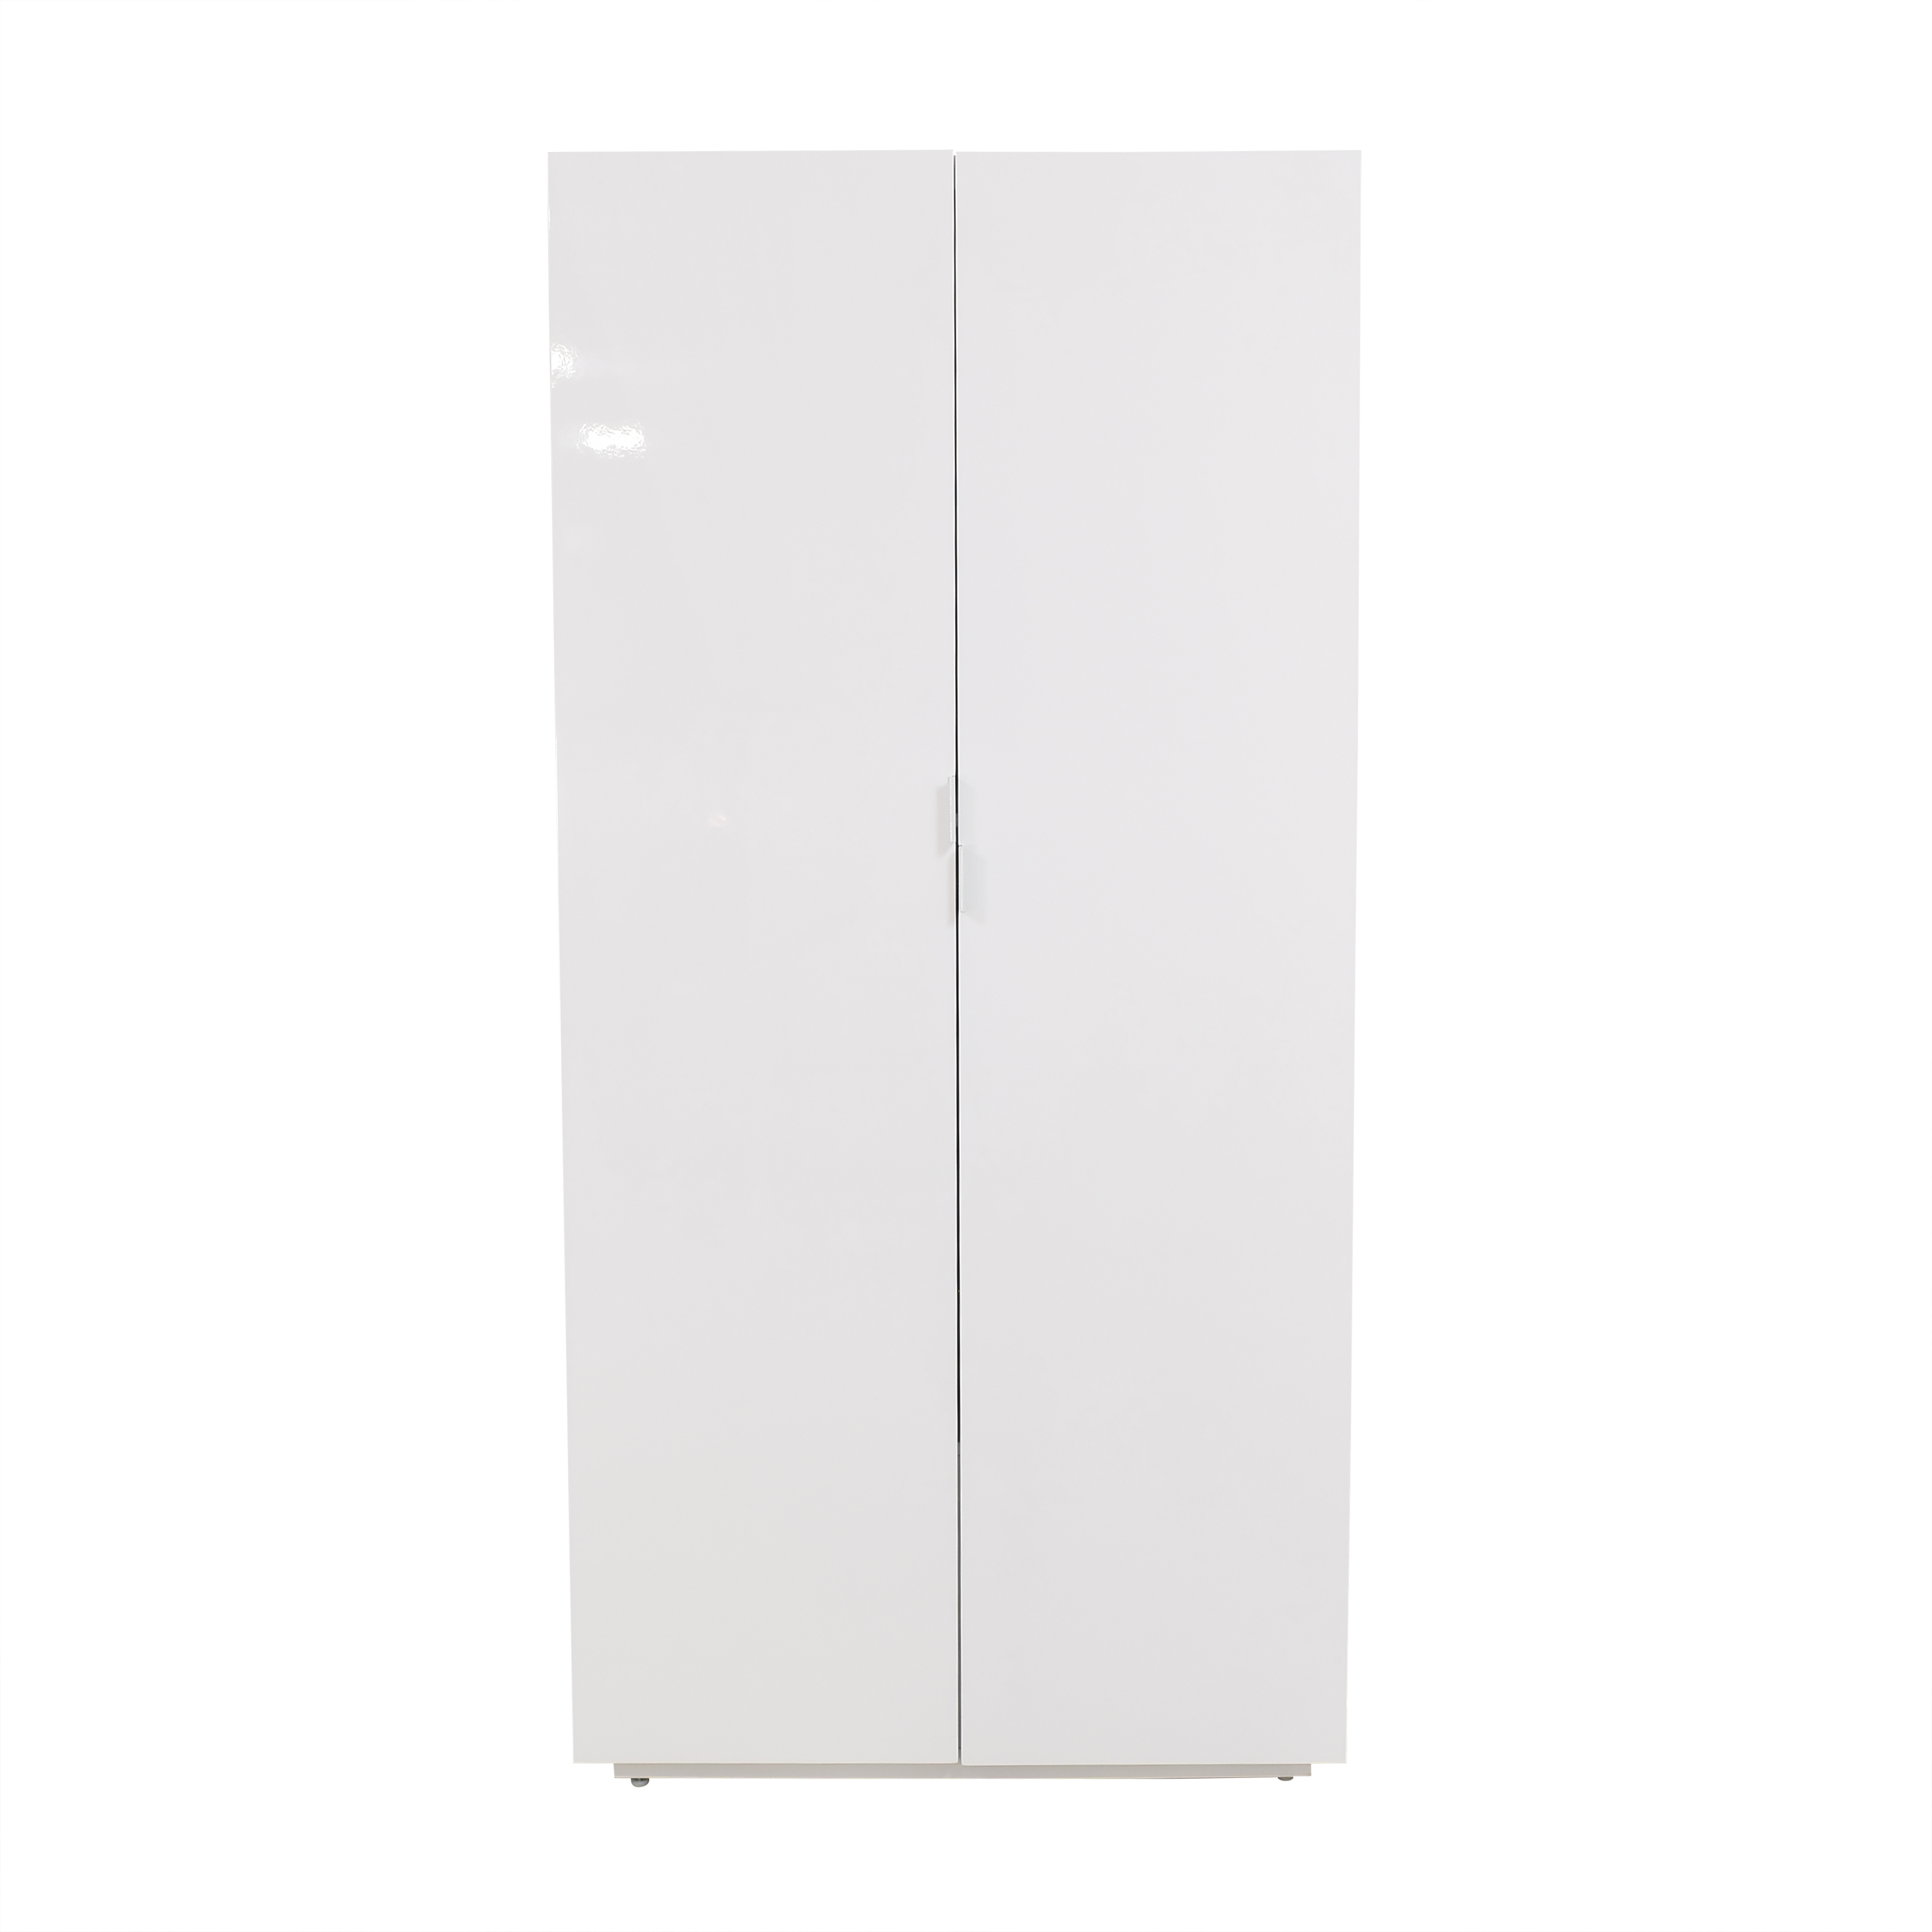 CB2 CB2 Wall Wardrobe with Shelves dimensions